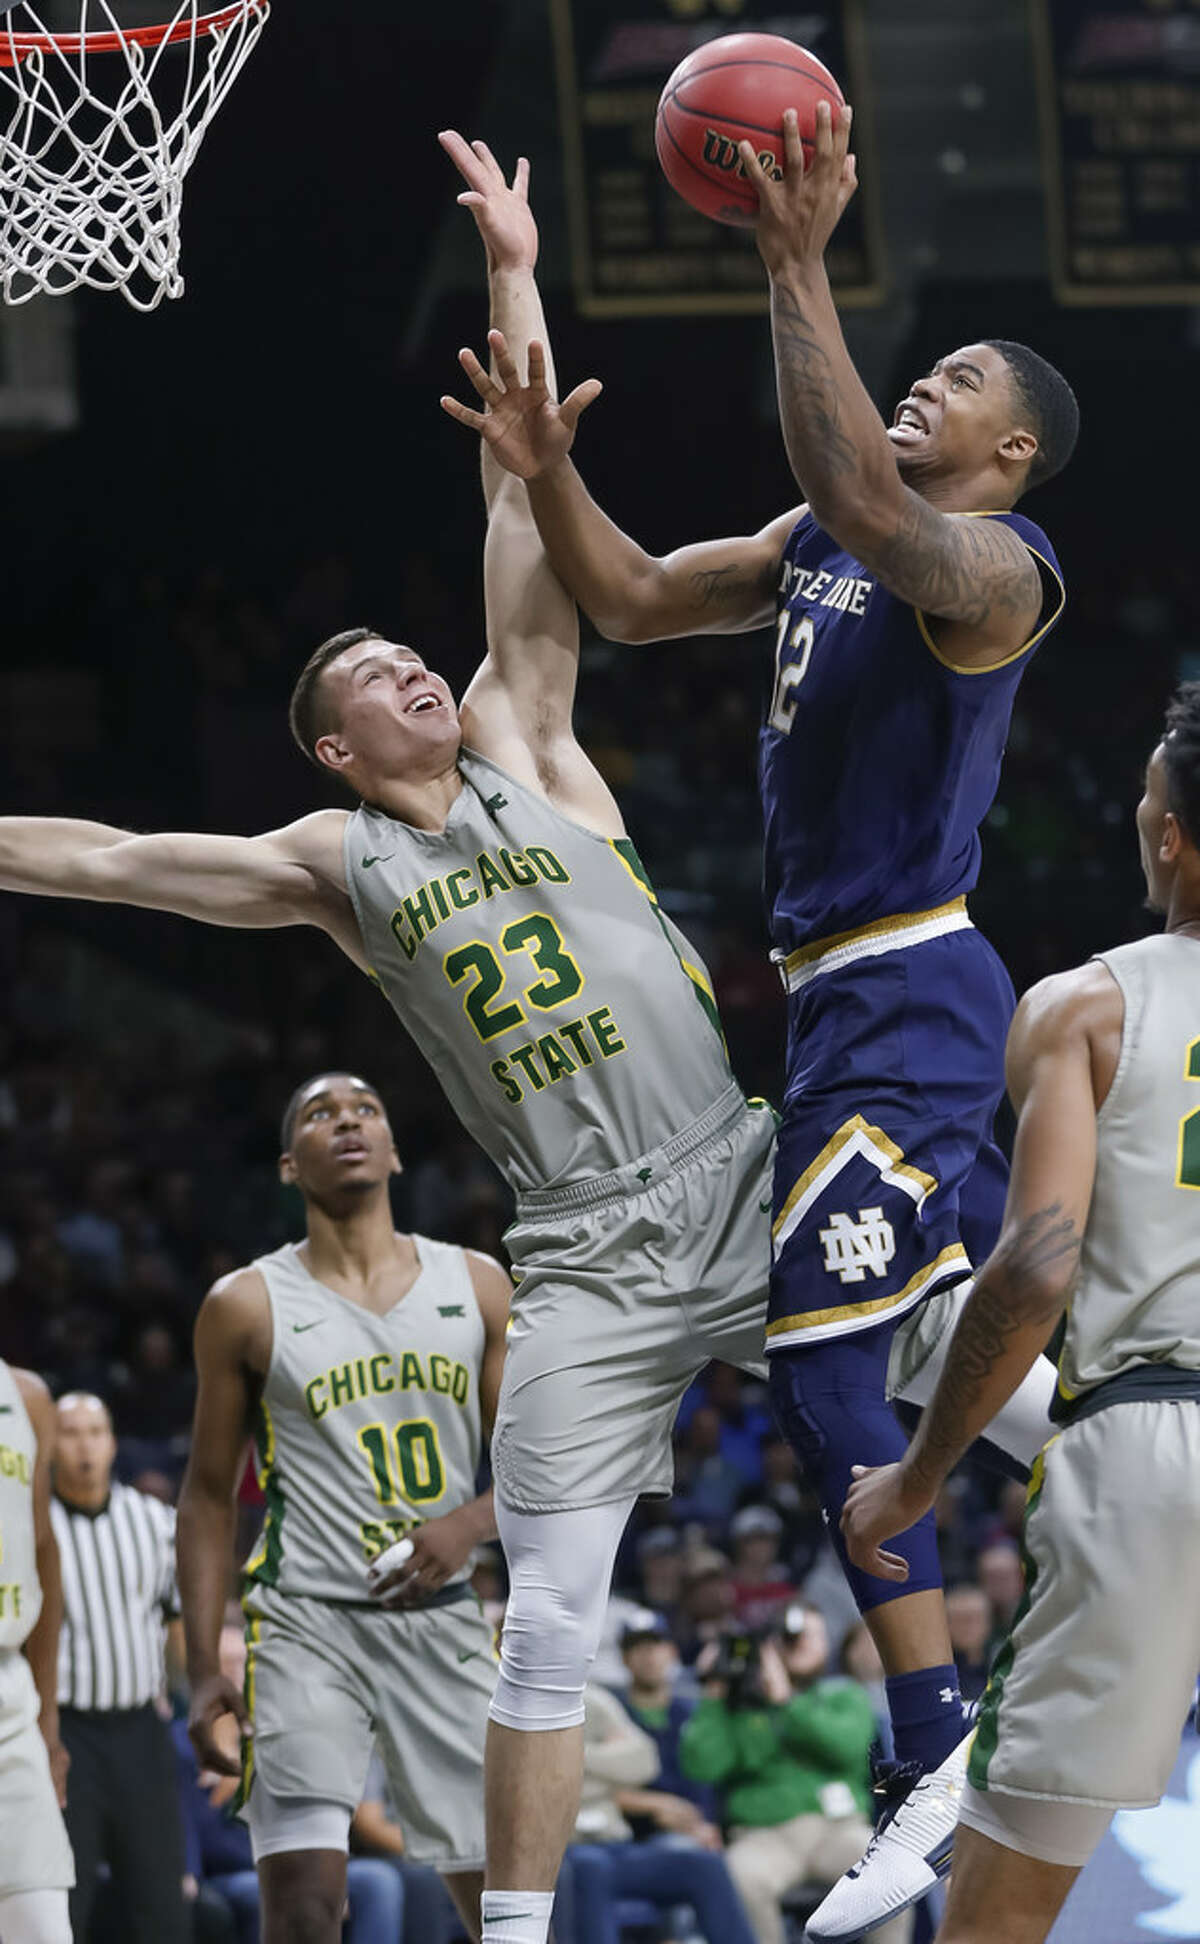 Troy native Elijah Burns scored a career-high 15 points in Notre Dame's win over Chicago State on Nov. 8. (Michael Hickey/Getty Images)